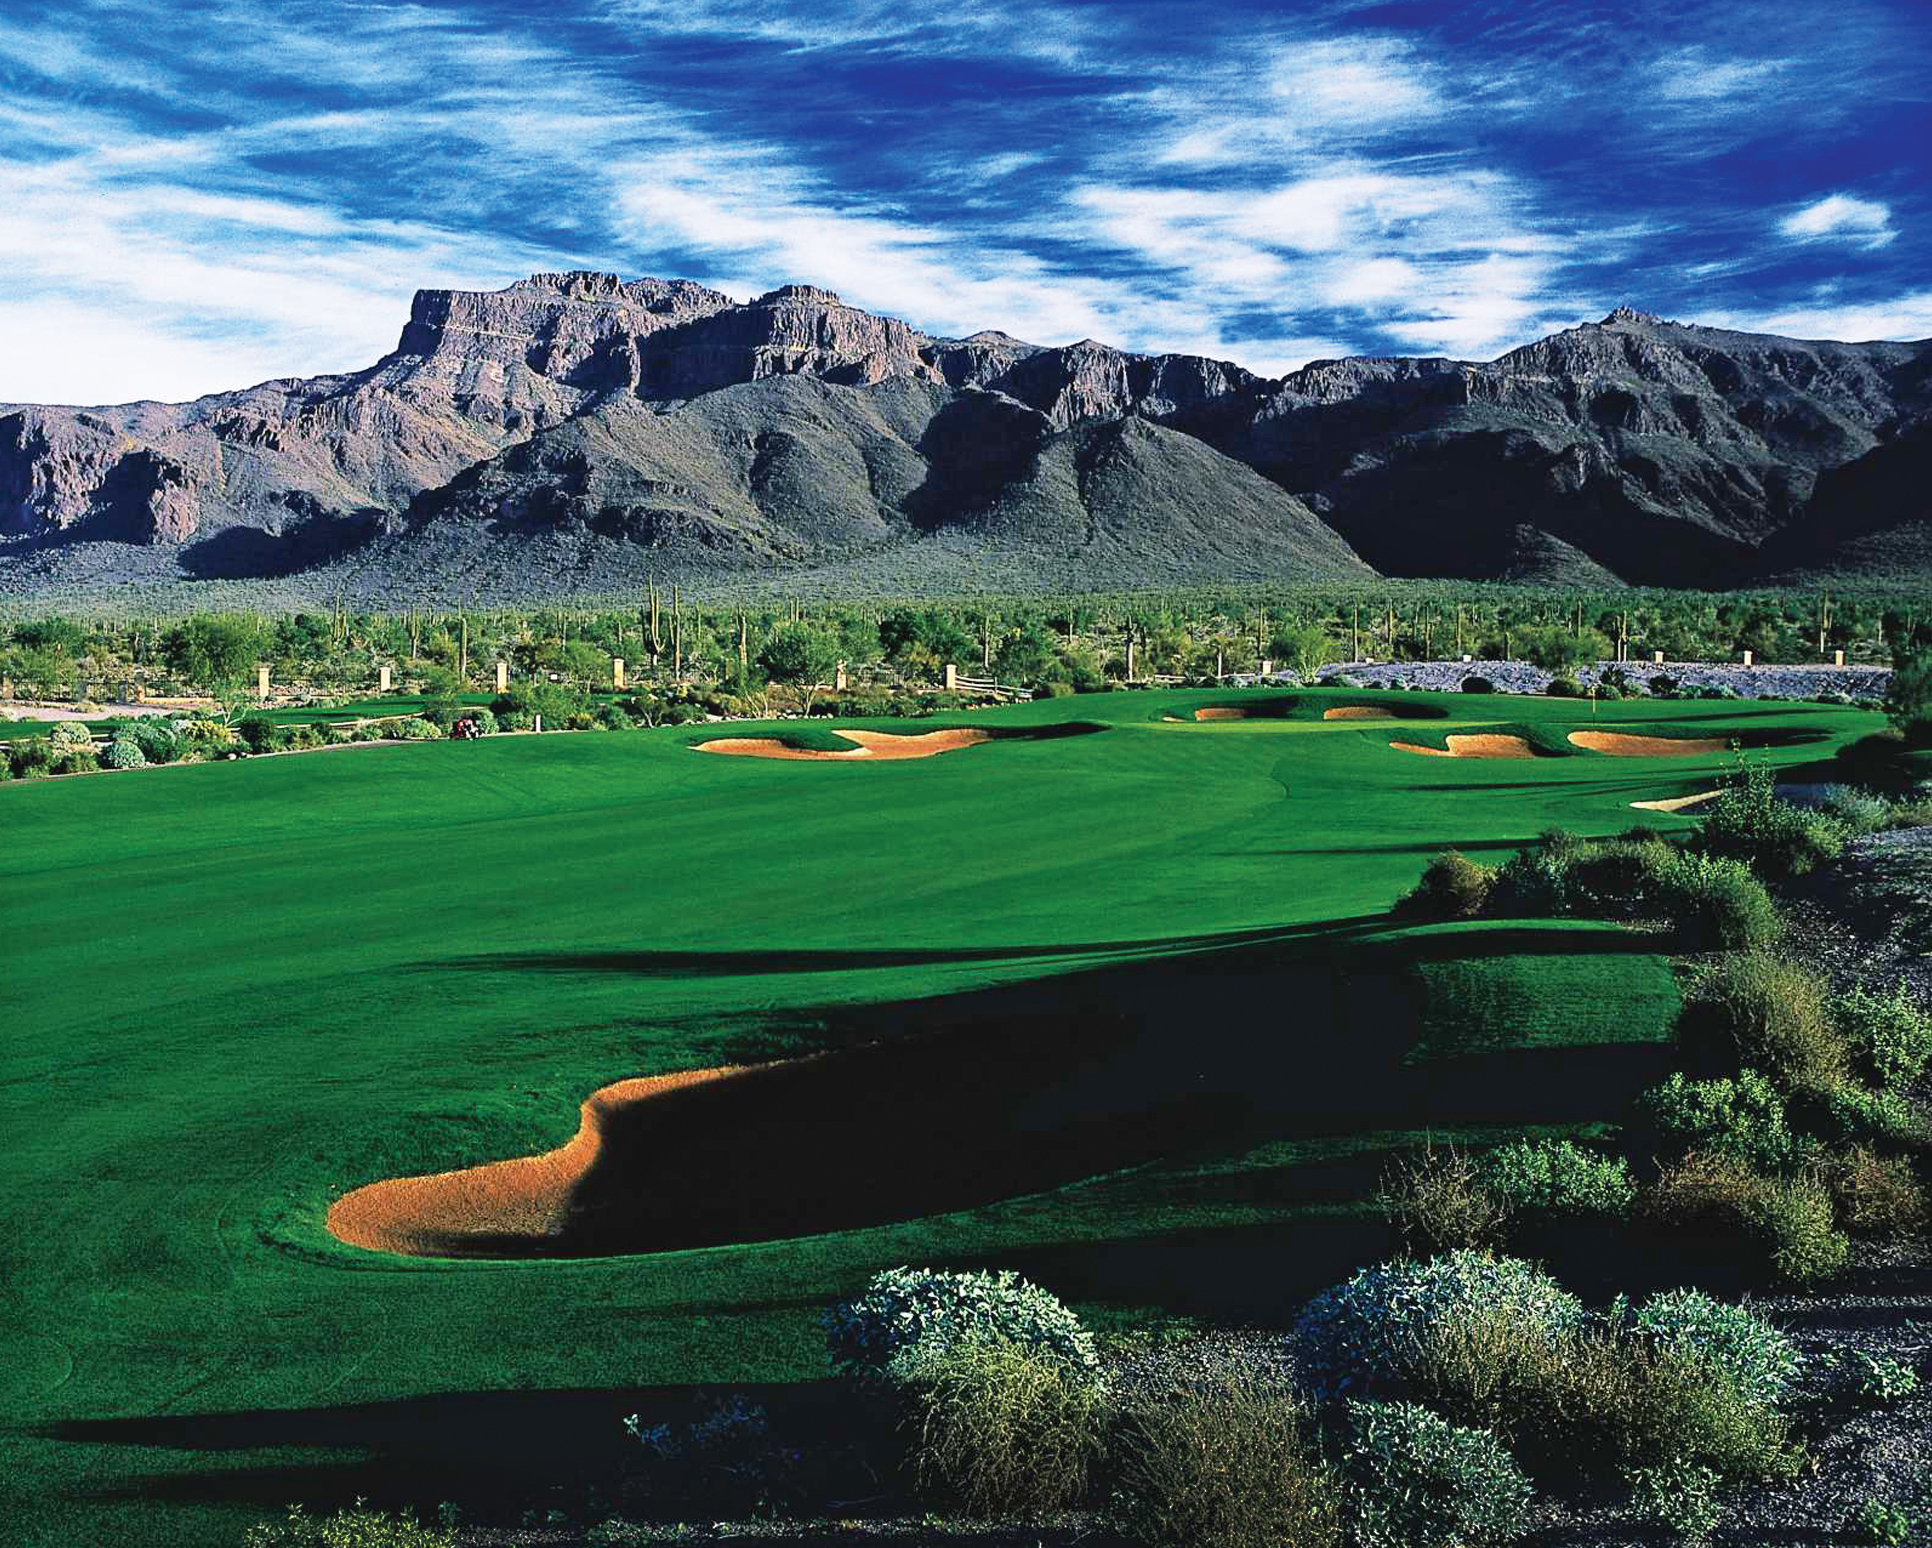 Superstition Mountain's Prospector course